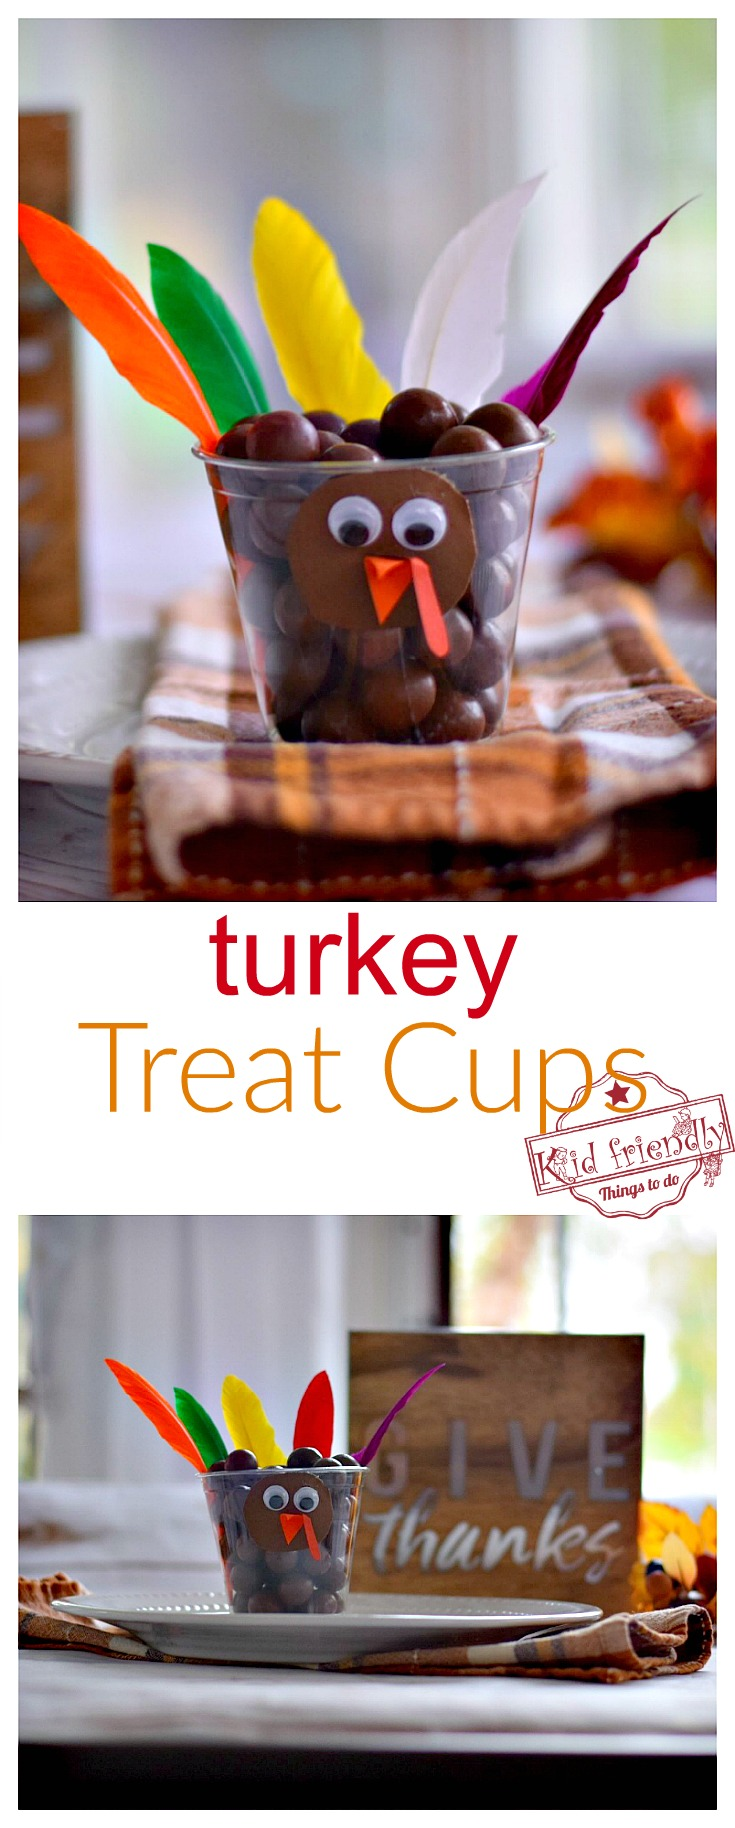 Fun Candy Turkey Treat Cups for a Thanksgiving Food Craft - fun idea for the kid's table or a party at school! www.kidfriendlythingstodo.com